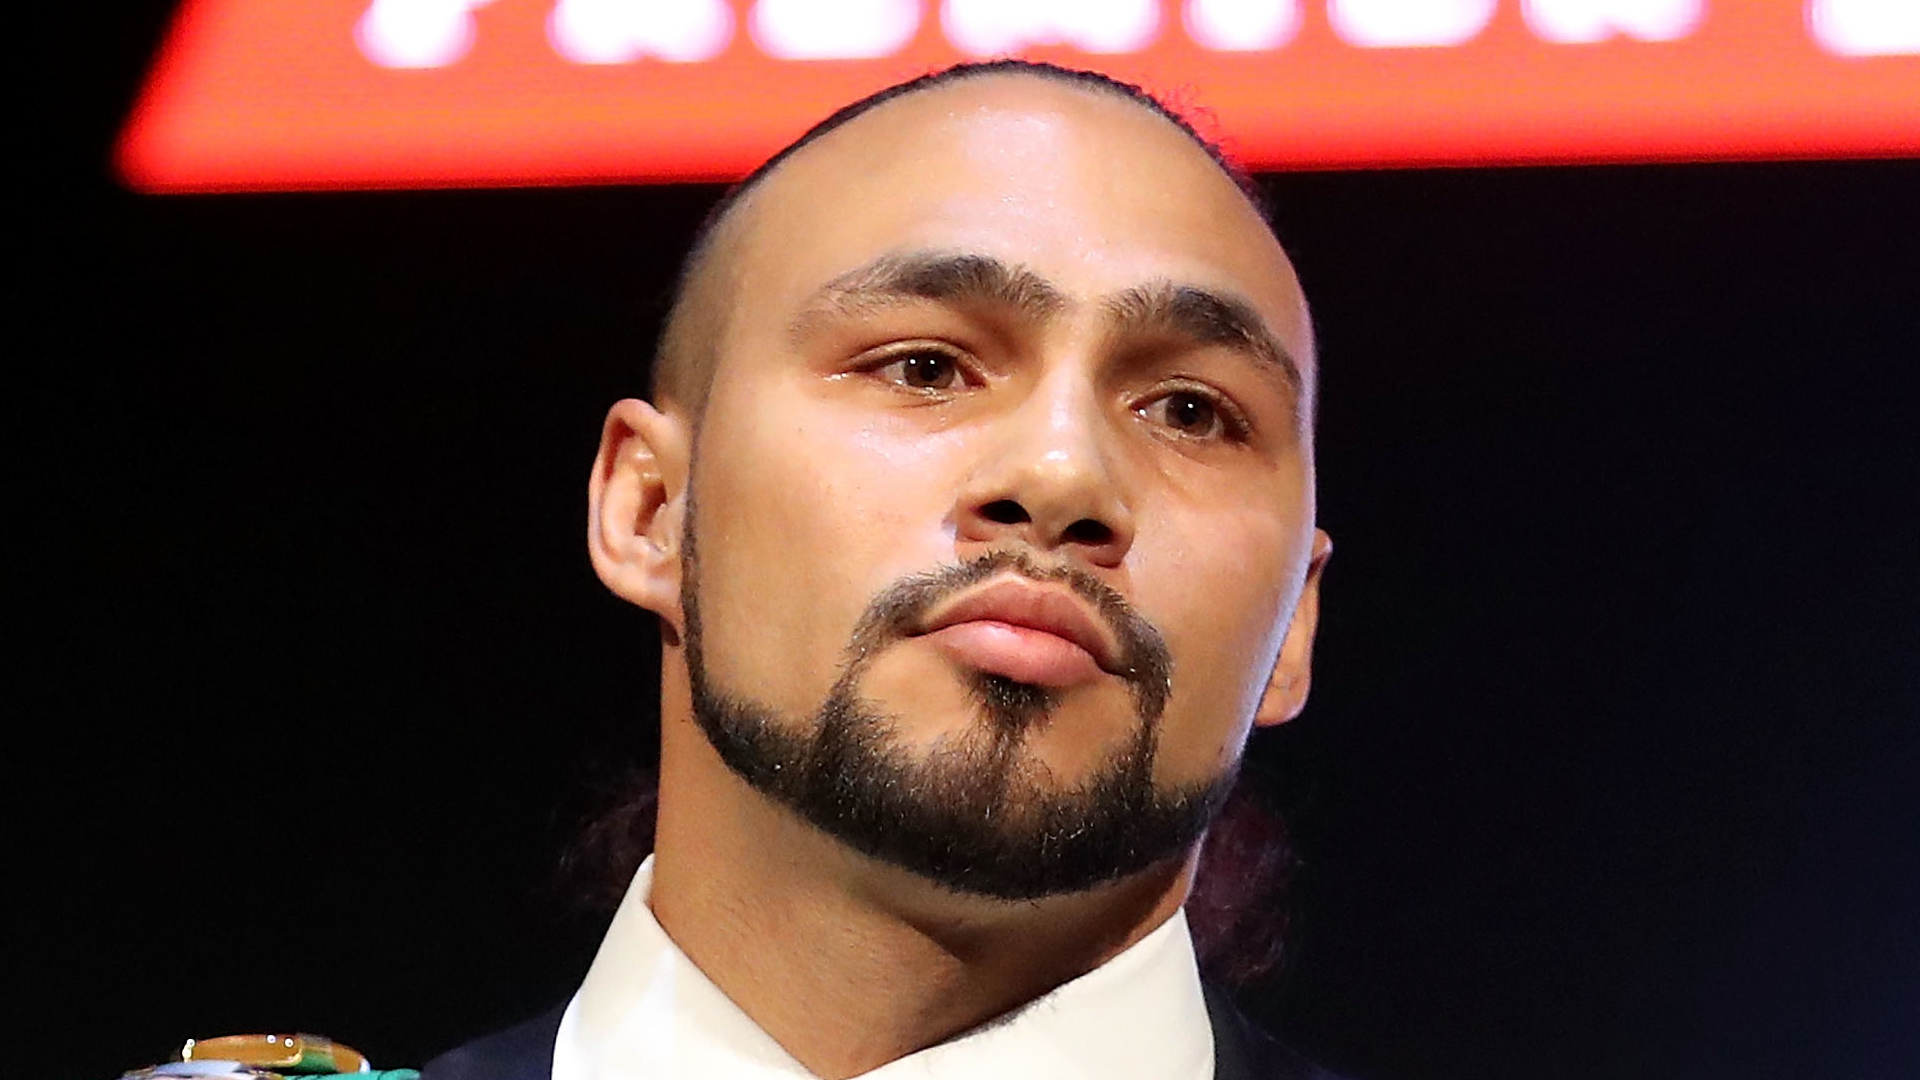 Keith Thurman Ethnicity, Race, and Nationality